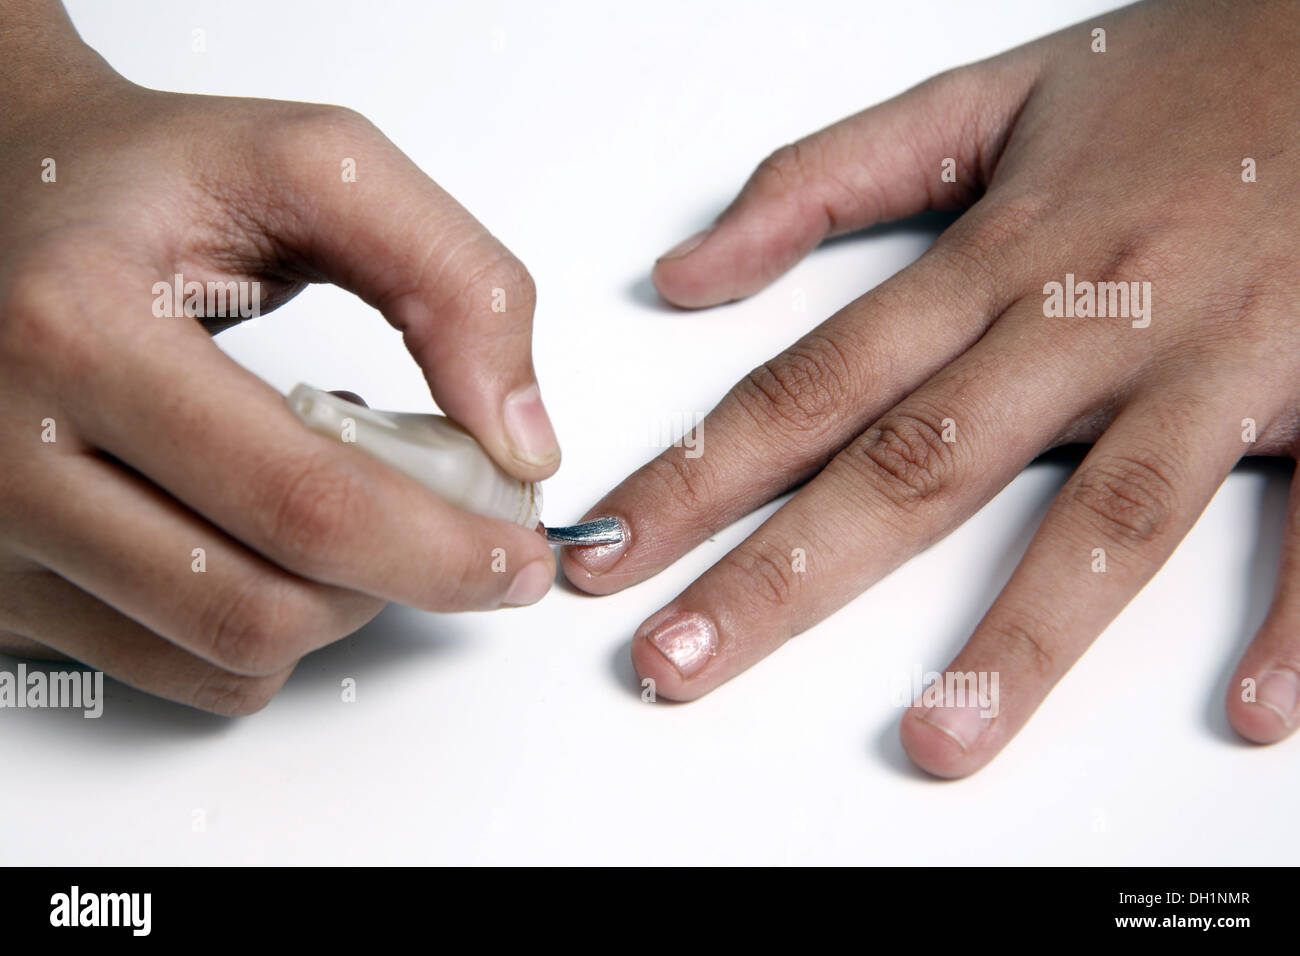 Young girl woman applying nail polish on finger close up of fingers and nail polish brush   MR#743AC Stock Photo